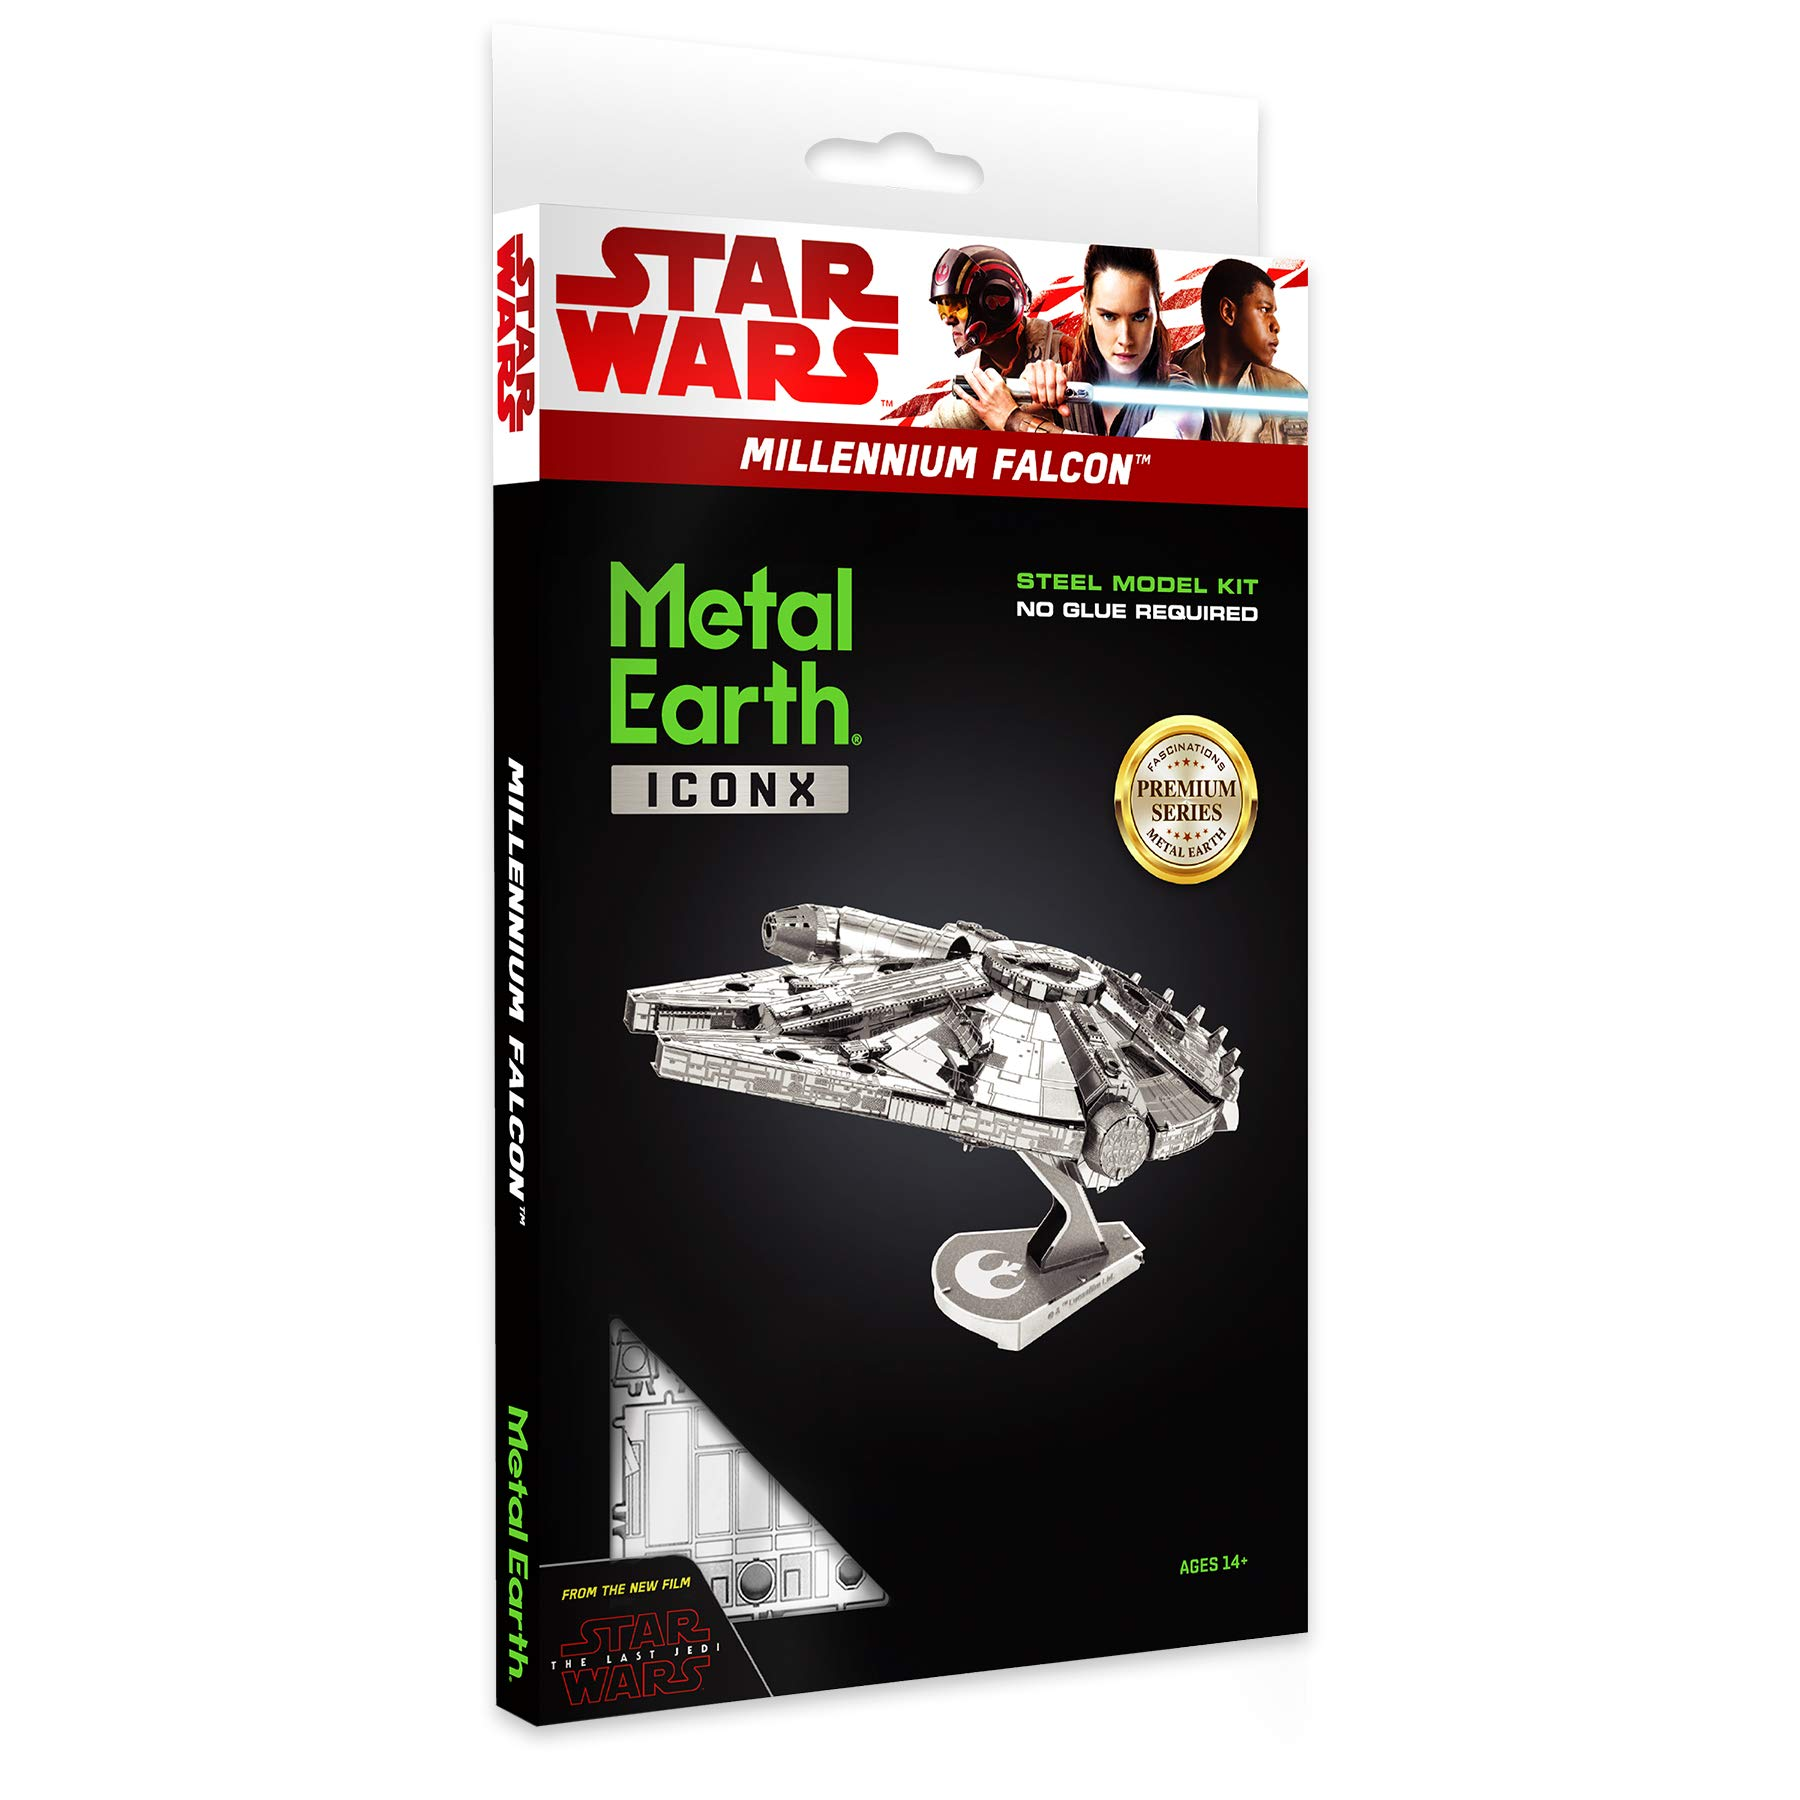 Metal Earth ICONX Star Wars Millennium Falcon Premium Series 3D Metal Model Kit by Fascinations (Image #2)